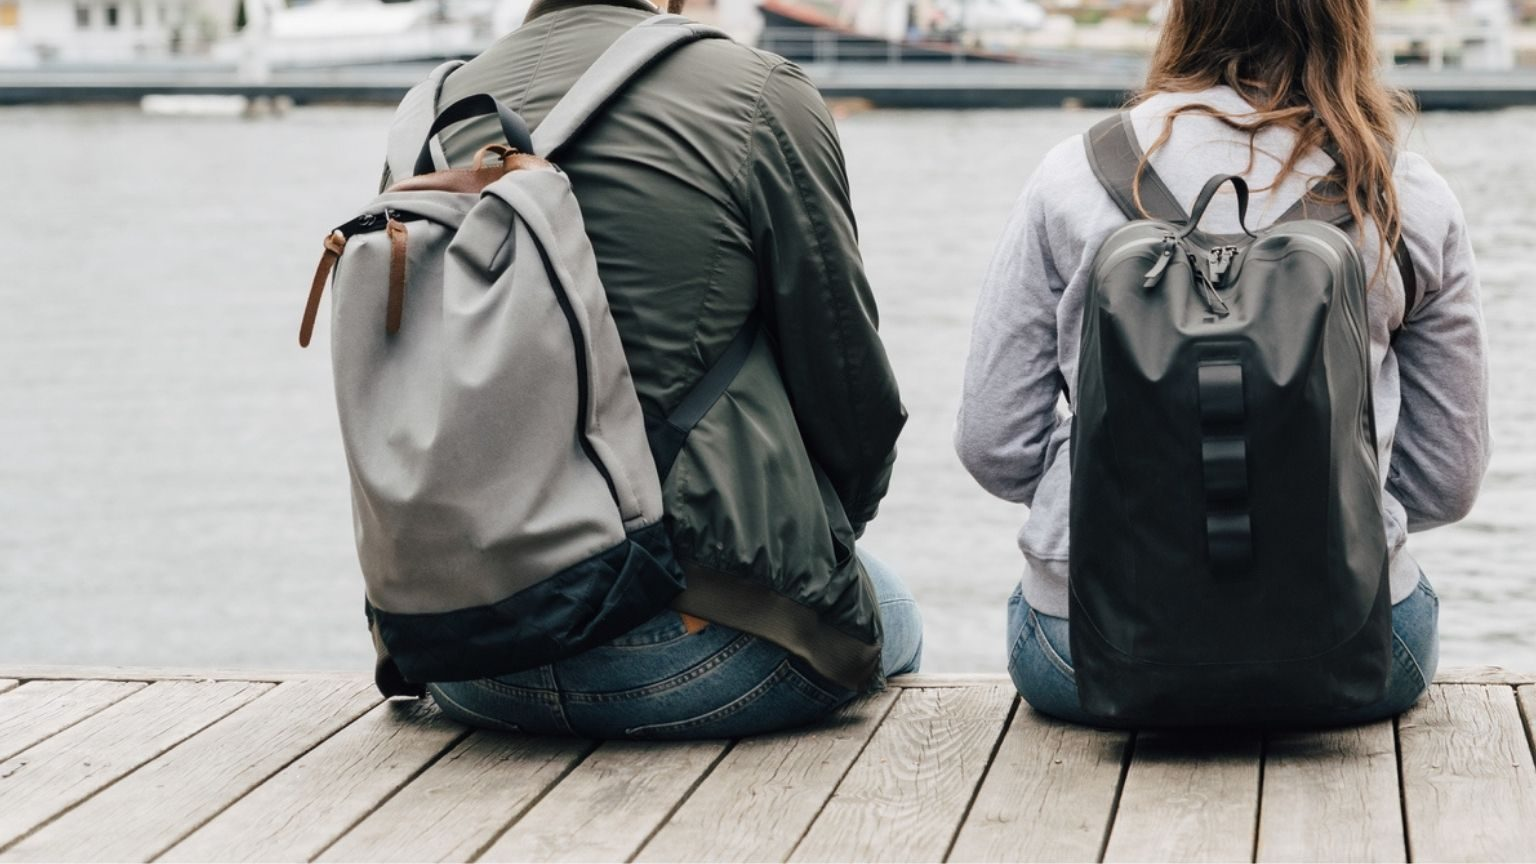 Rear view of friends with backpacks